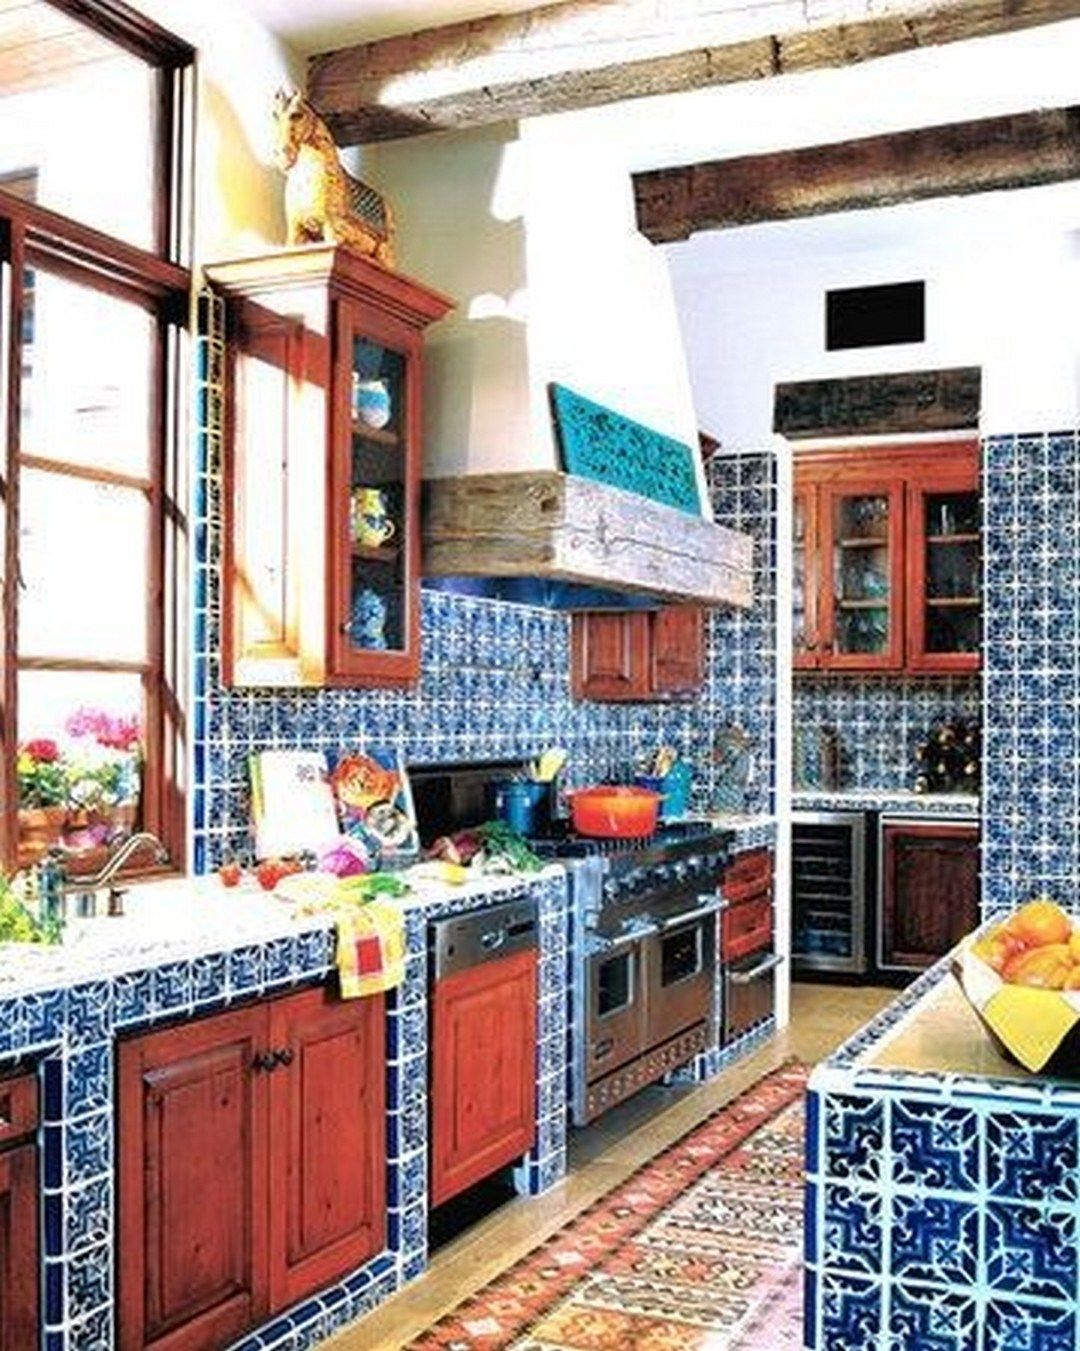 37 Colorful Kitchen Decorating With Mexican Style 15 Kitchendecorpad Mexican Style Kitchens Kitchen Design Decor Mexican Kitchen Decor